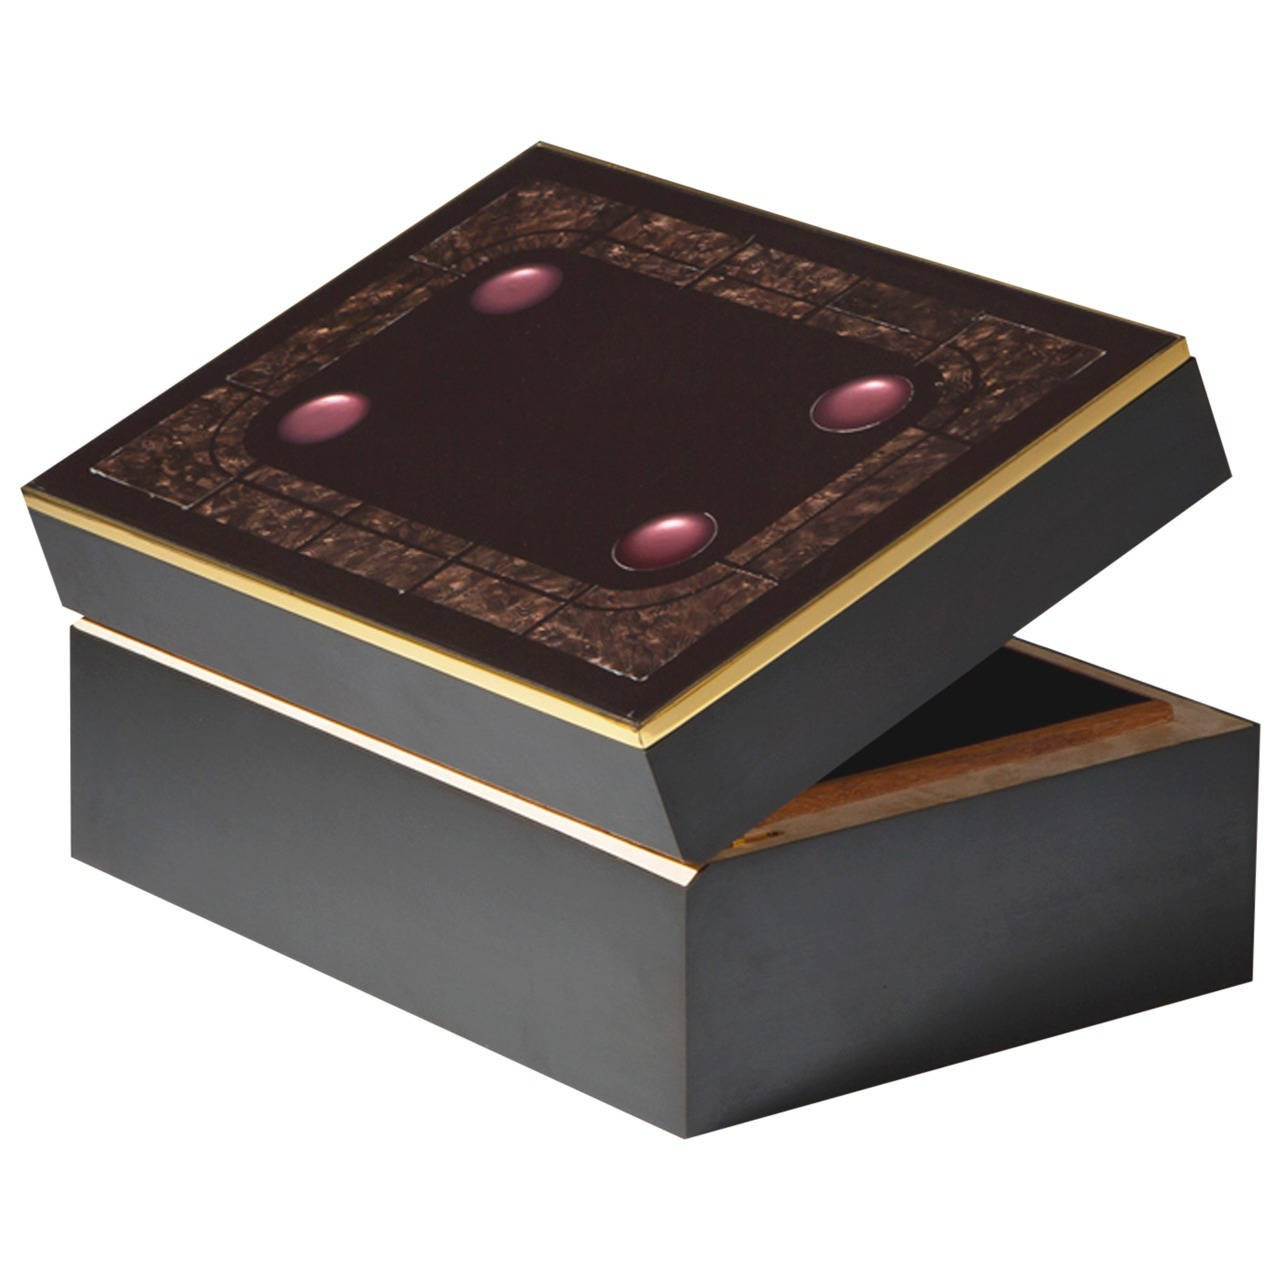 jean claude dresse decorative box with gem stones and japanese lacquer 1 - Decorative Box